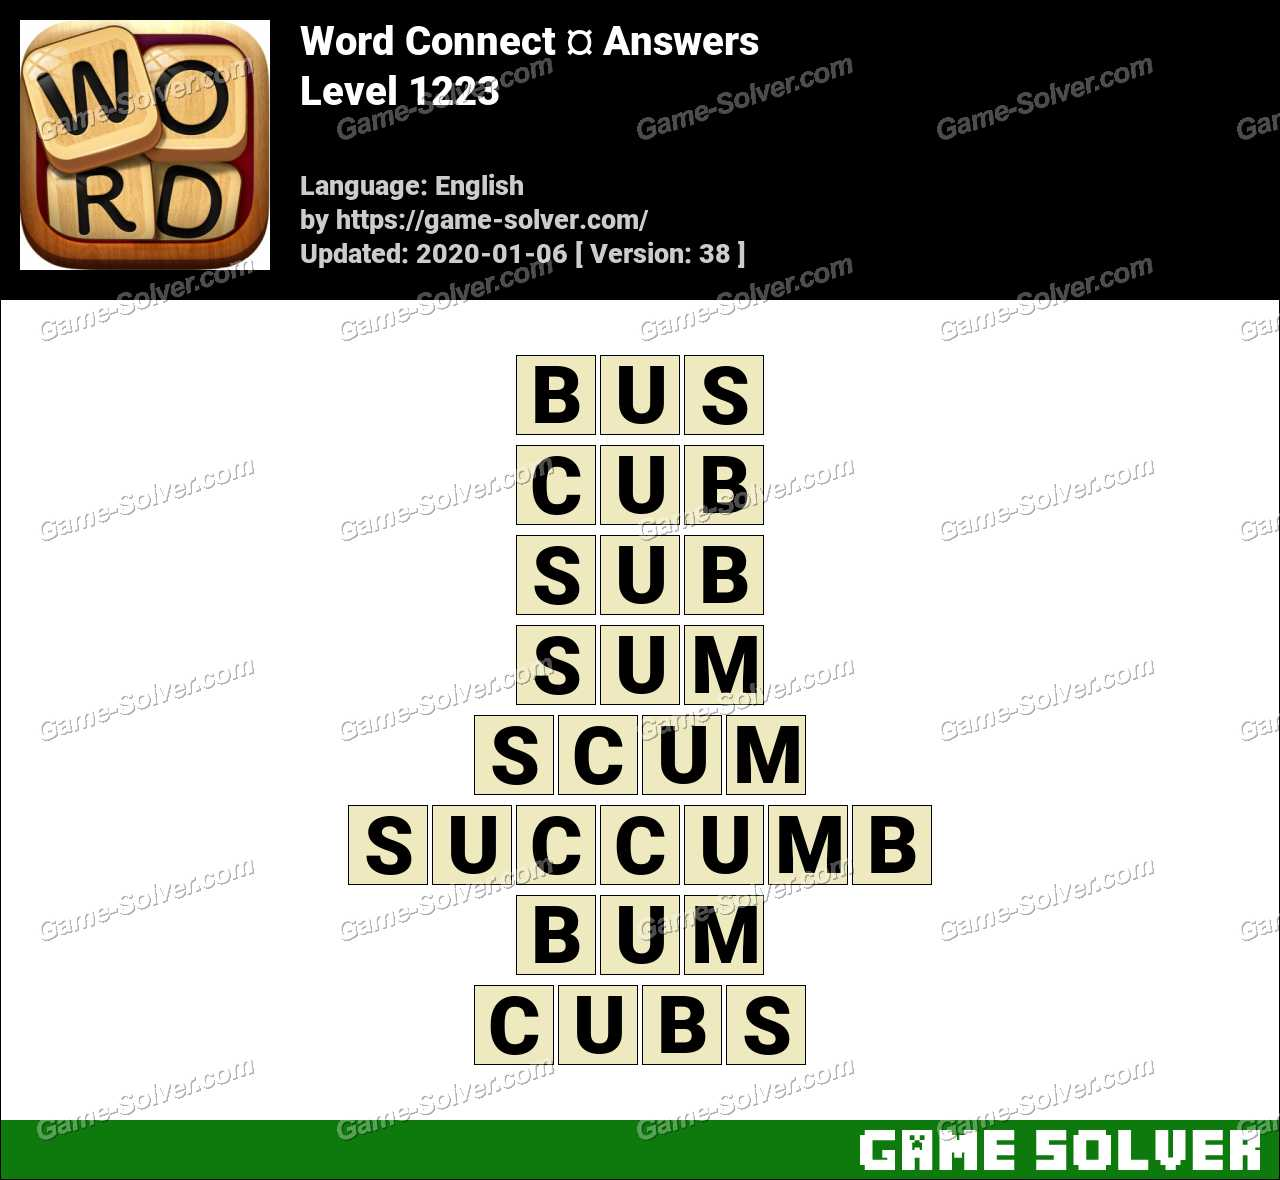 Word Connect Level 1223 Answers